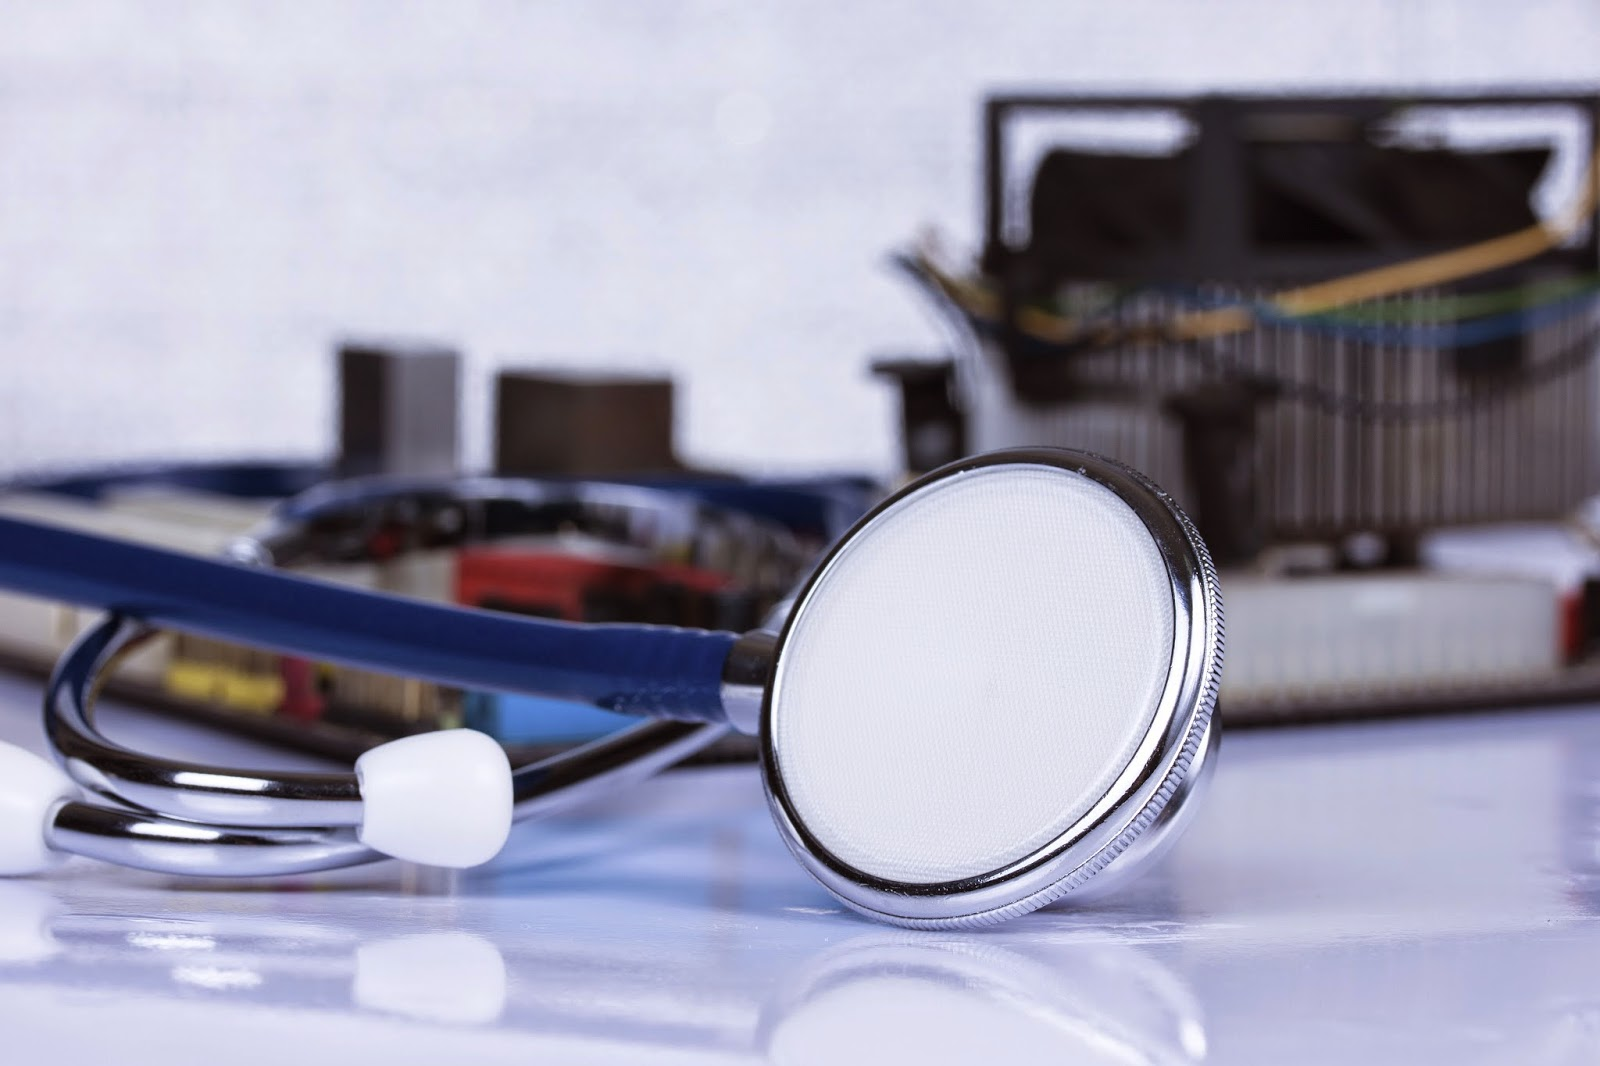 image of a Stethoscope in front of computer hardware